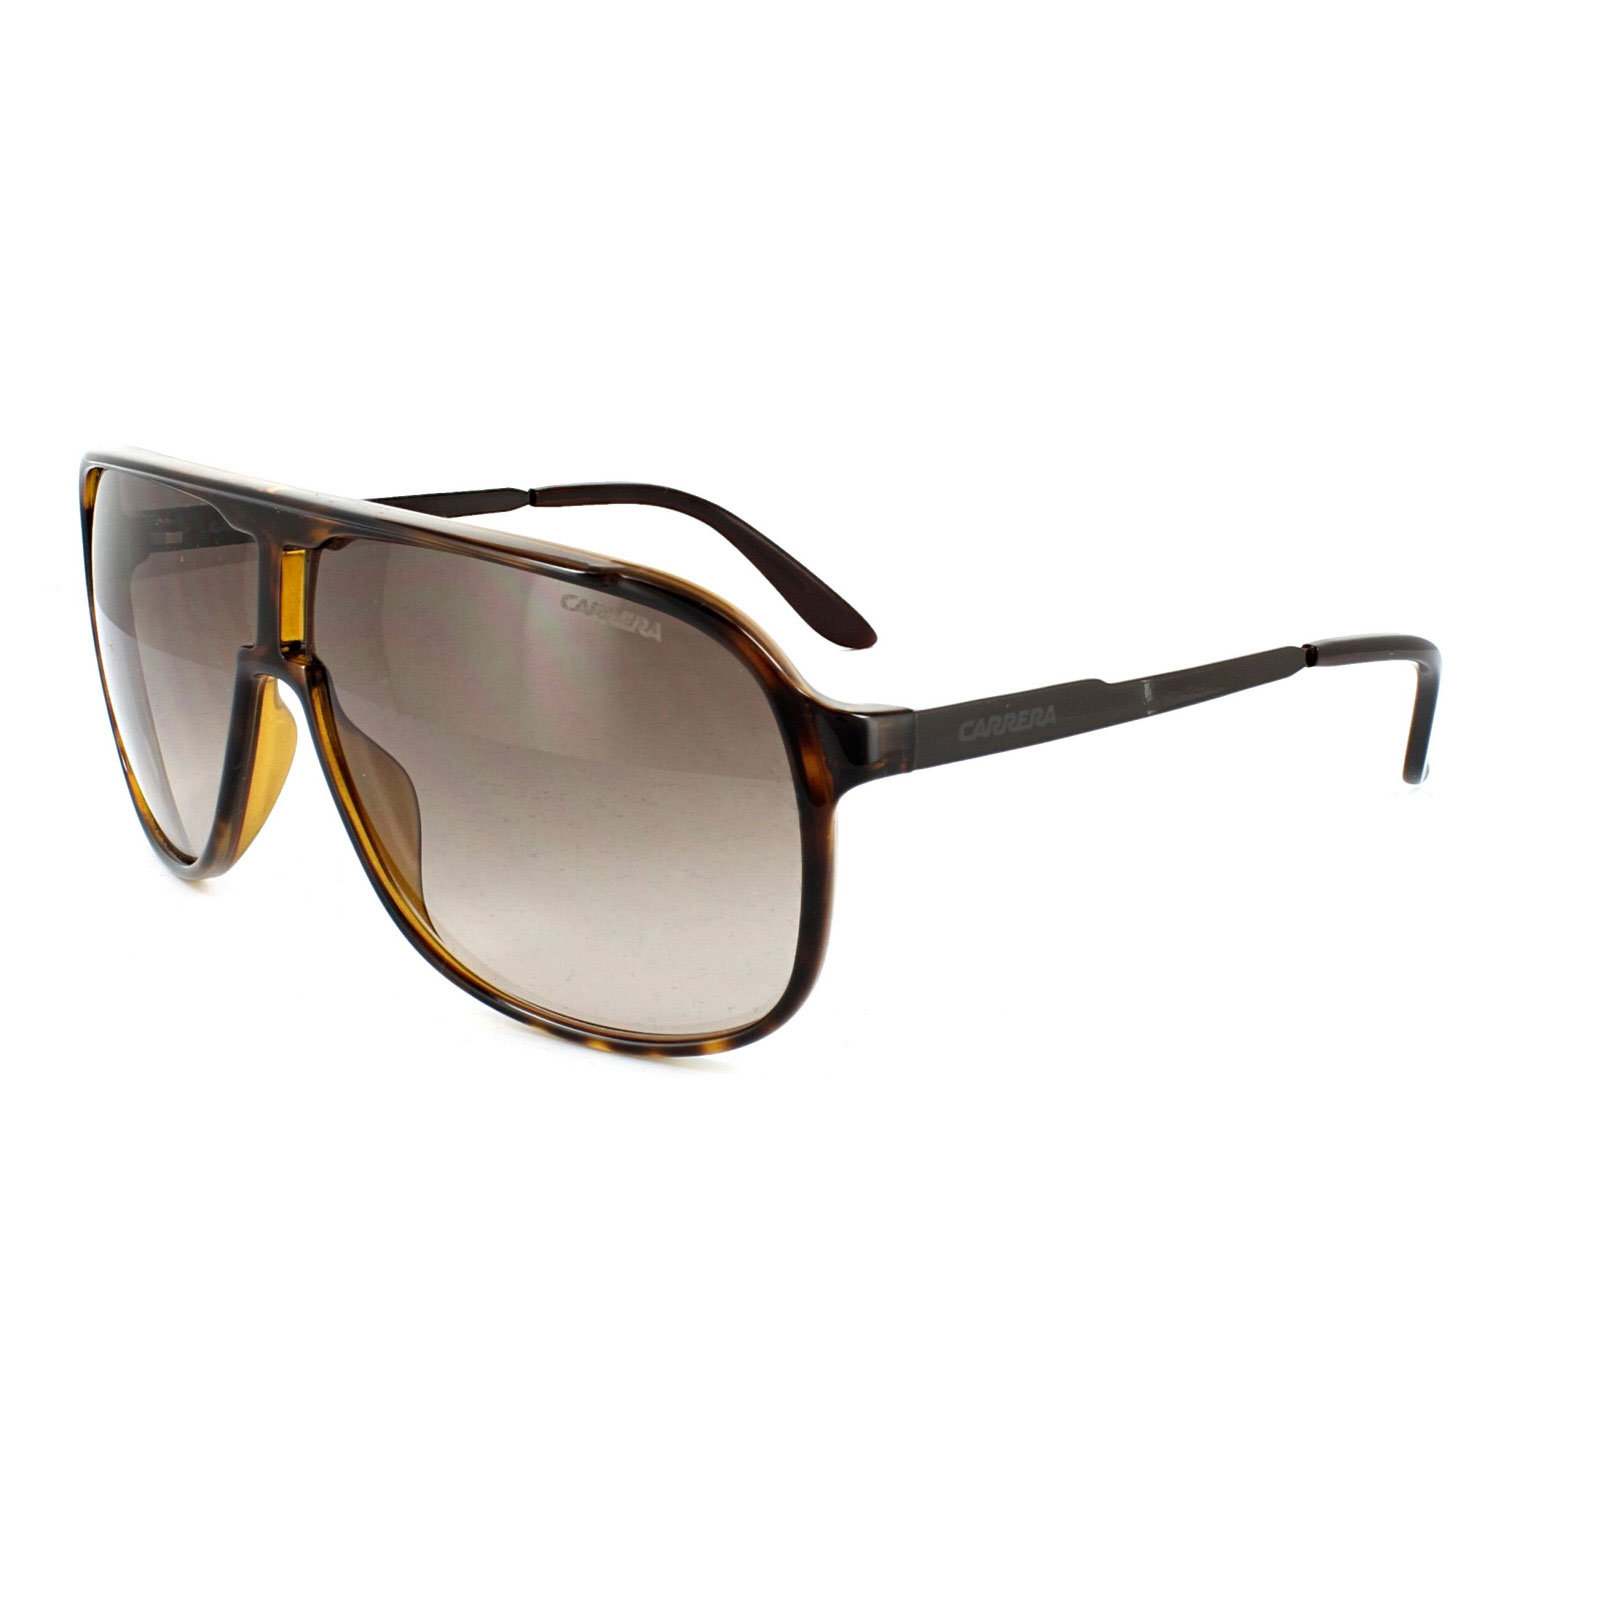 Brown Carrera Sunglasses  carrera sunglasses new safari kme j6 havana brown brown grant